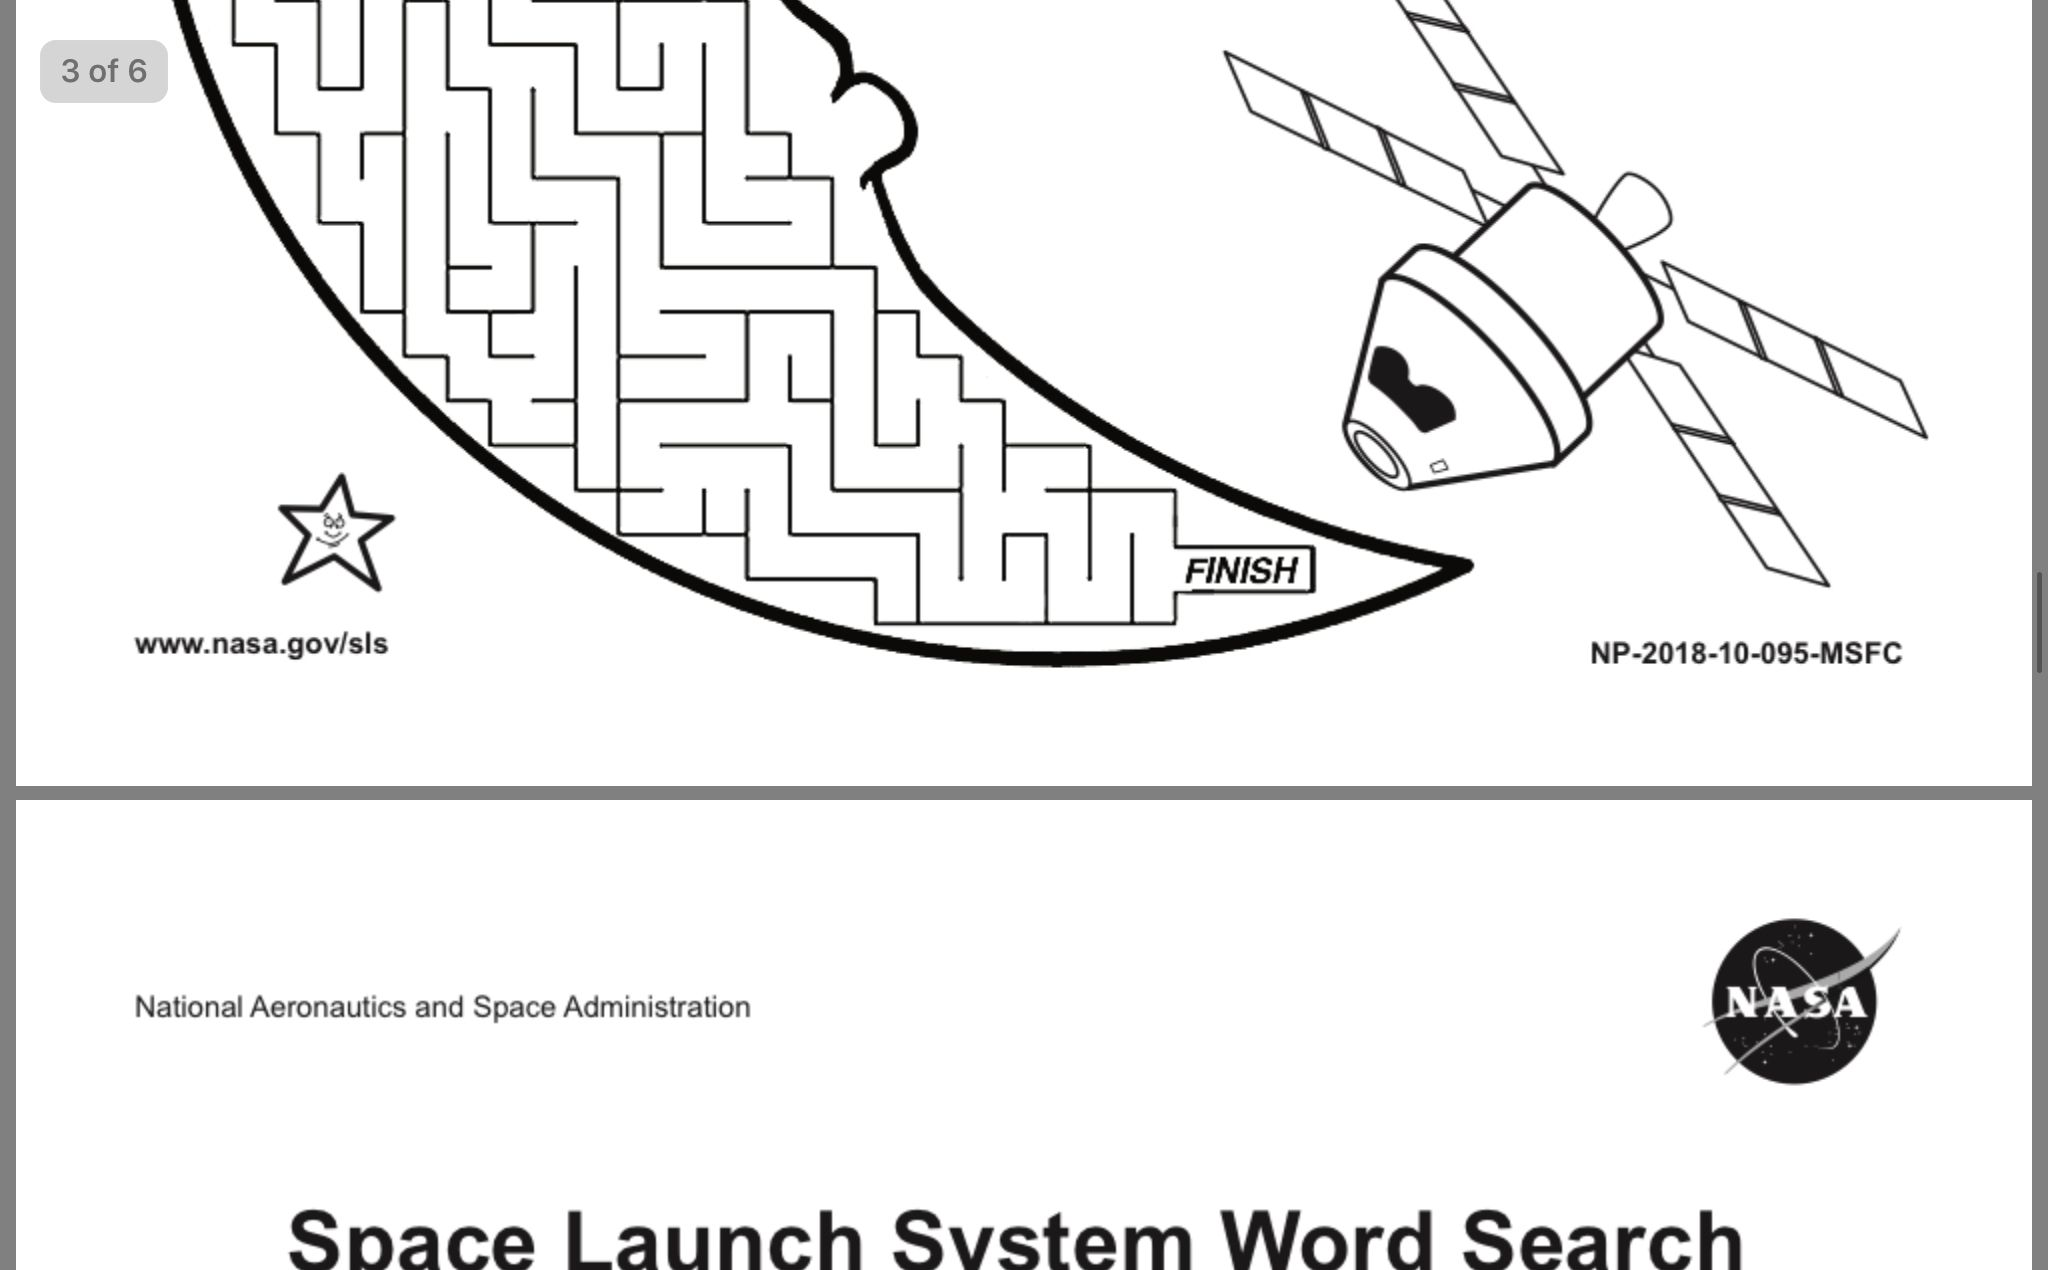 Pin by Zobeida Parra on Space crafts Space crafts, Space